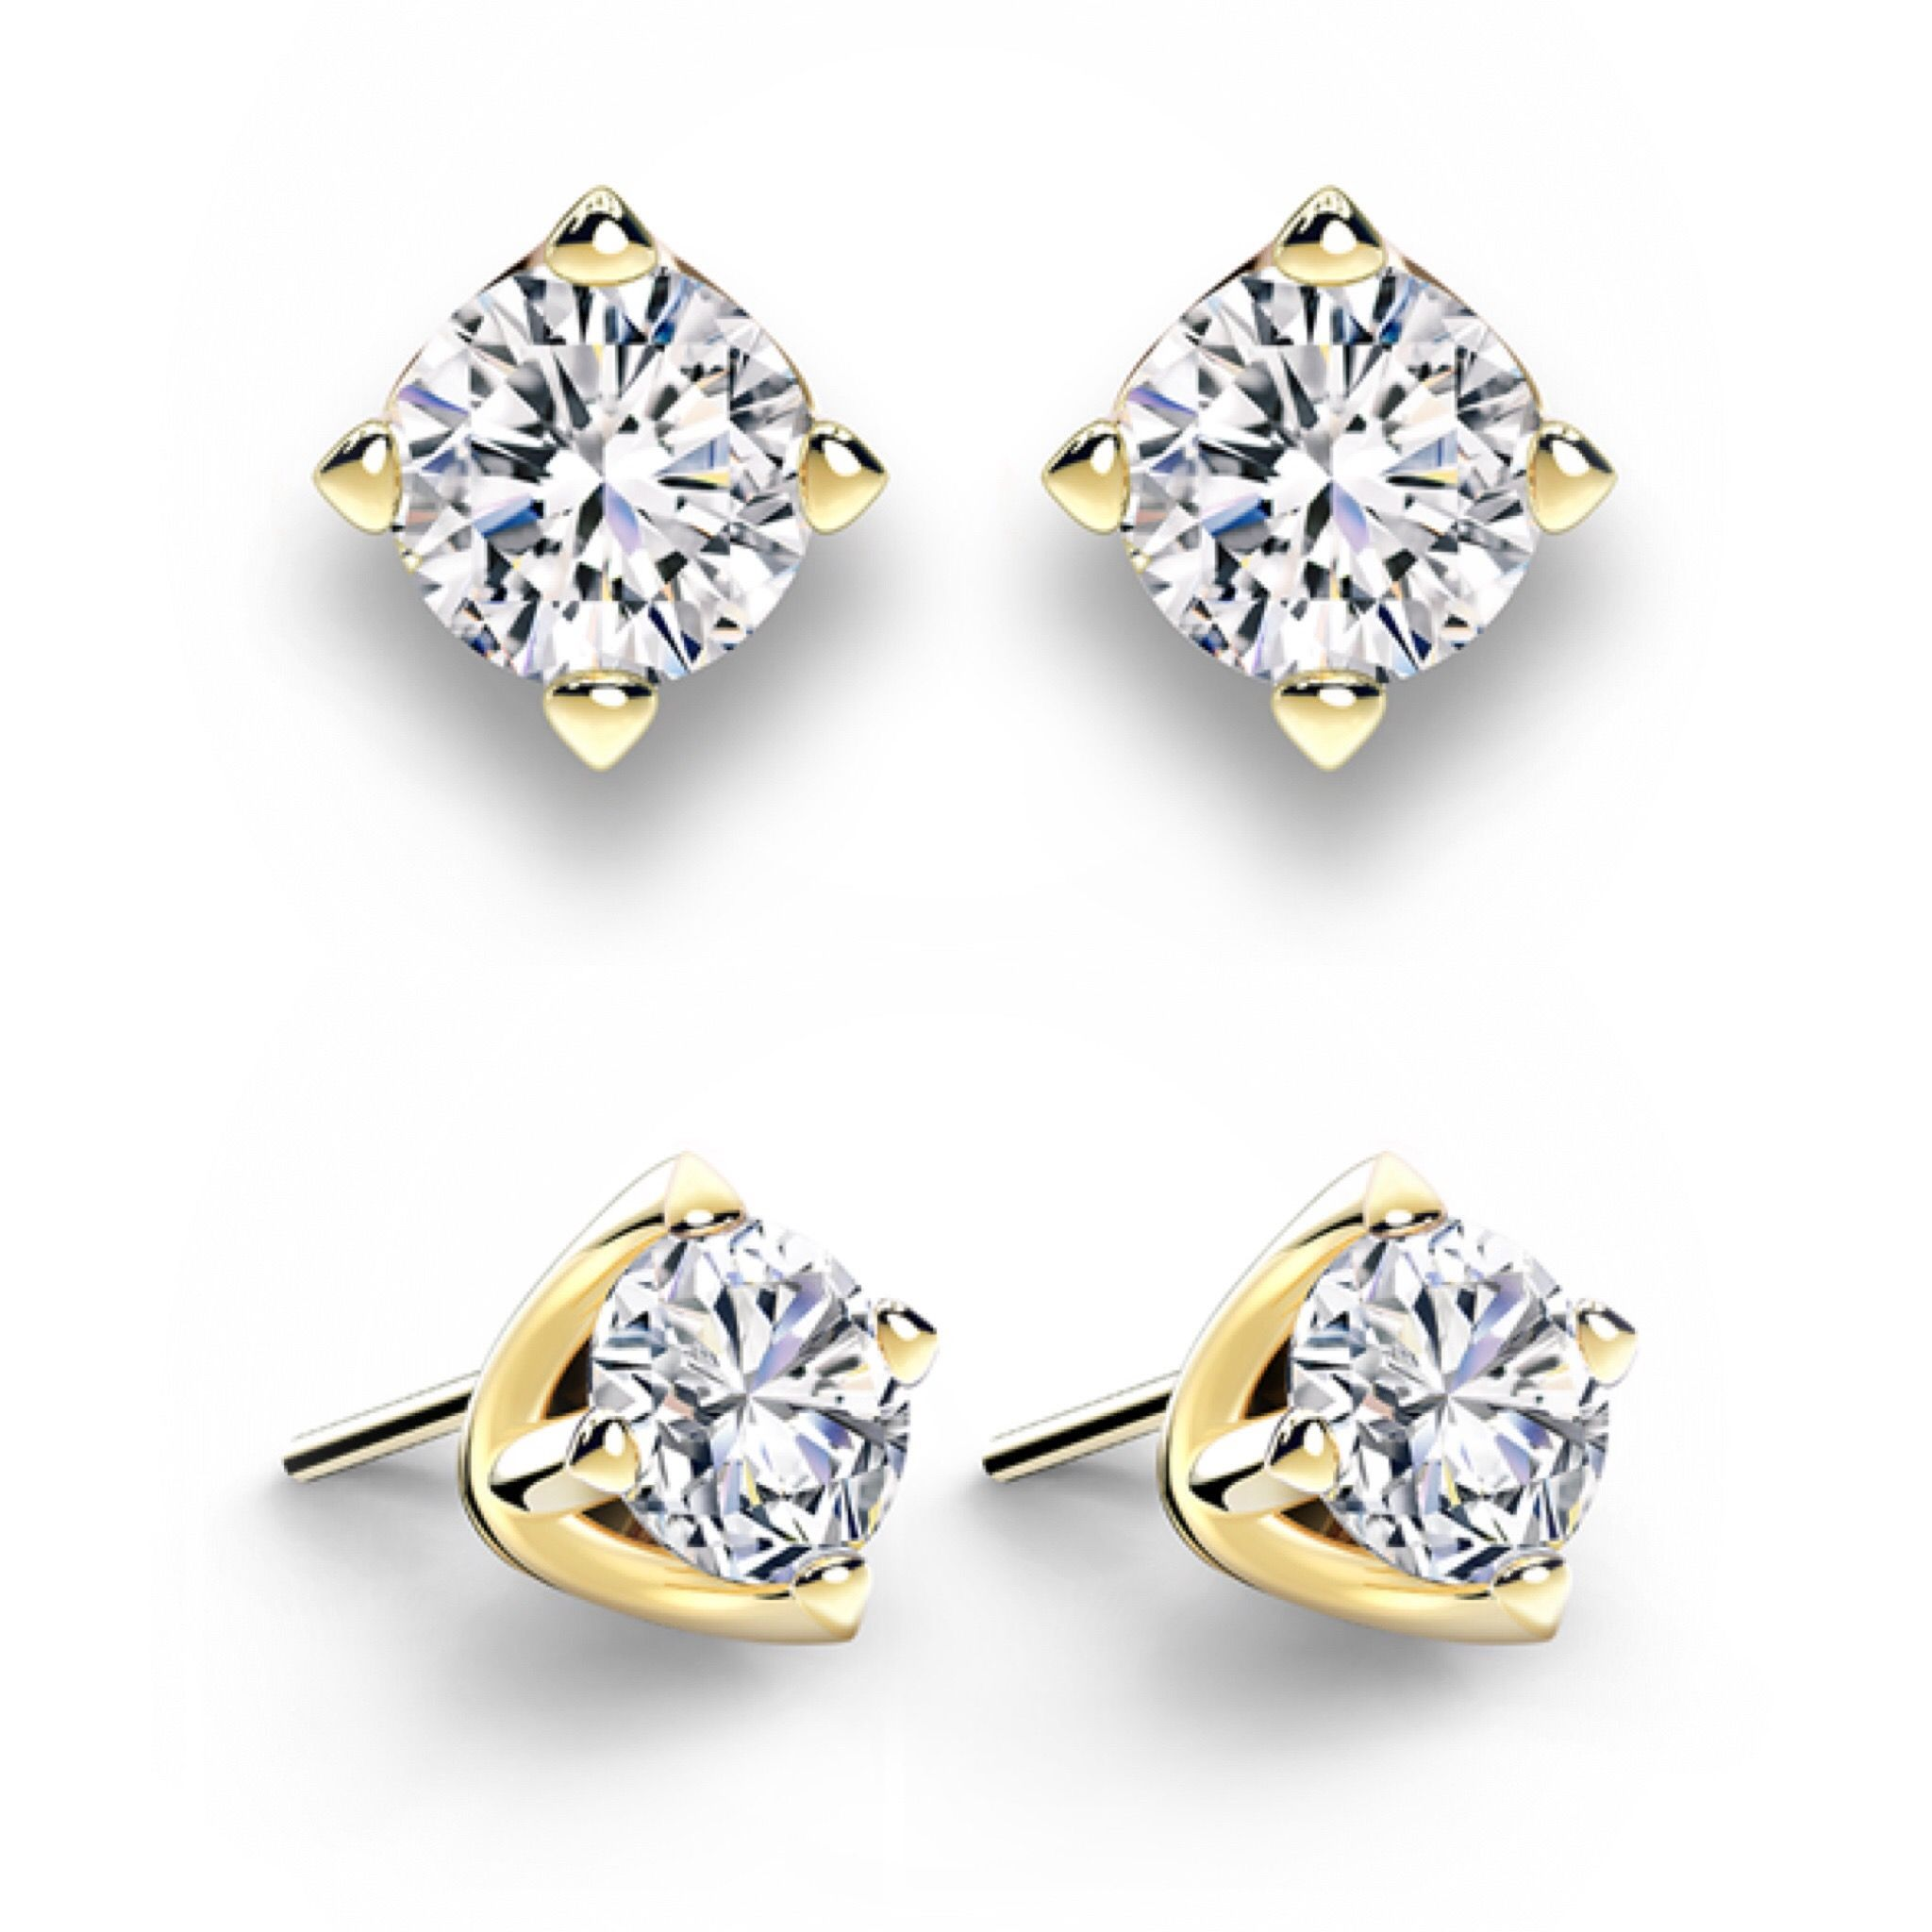 diamond solitaire brilliantcut stud studearrings aurora set earrings brilliant classic claw cut